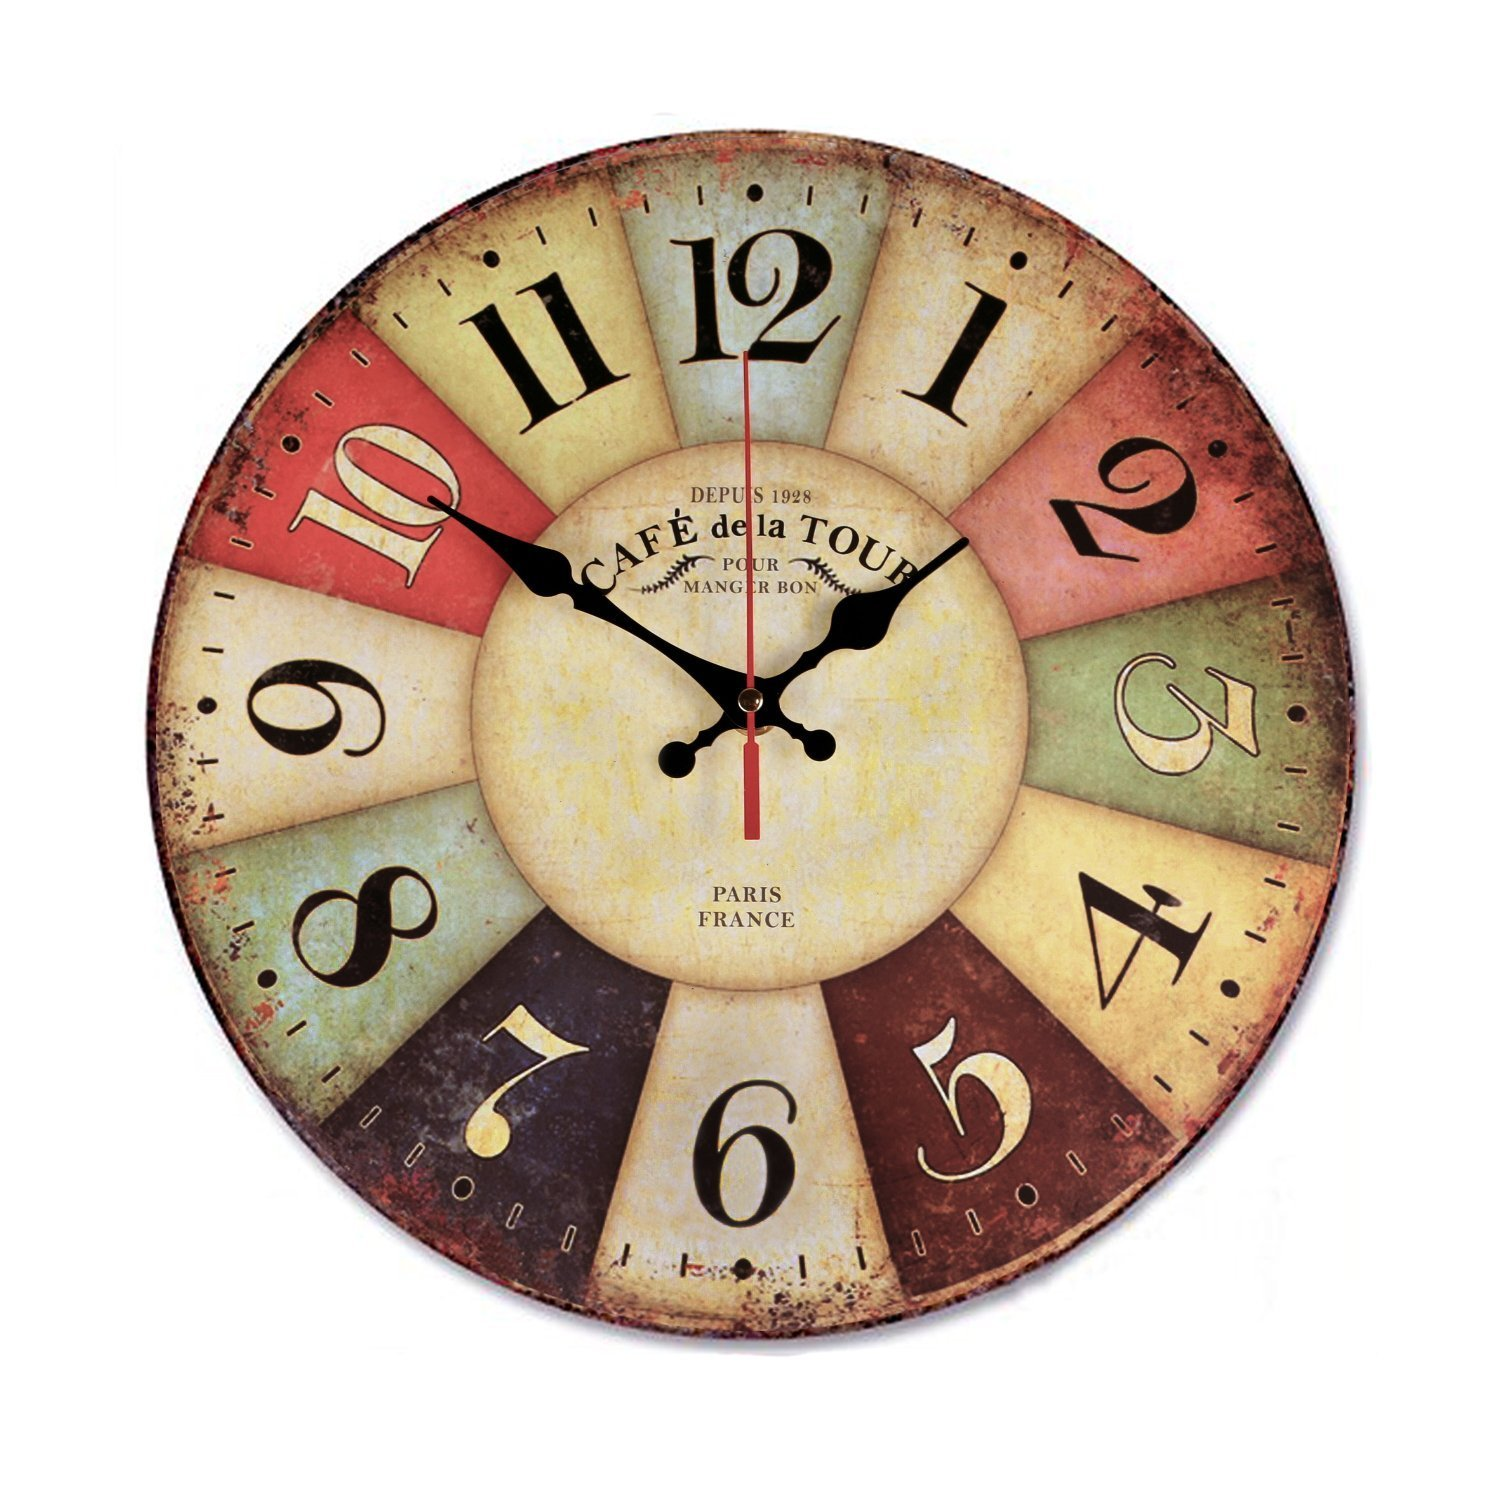 Gear Wall Clcok 12-Inch Silent Wall Wooden Clock French Country Tuscan Style Roman Numeral Design Clock Wall Decorative Clocks for Bedroom Living Room Bathroom Office Cafe